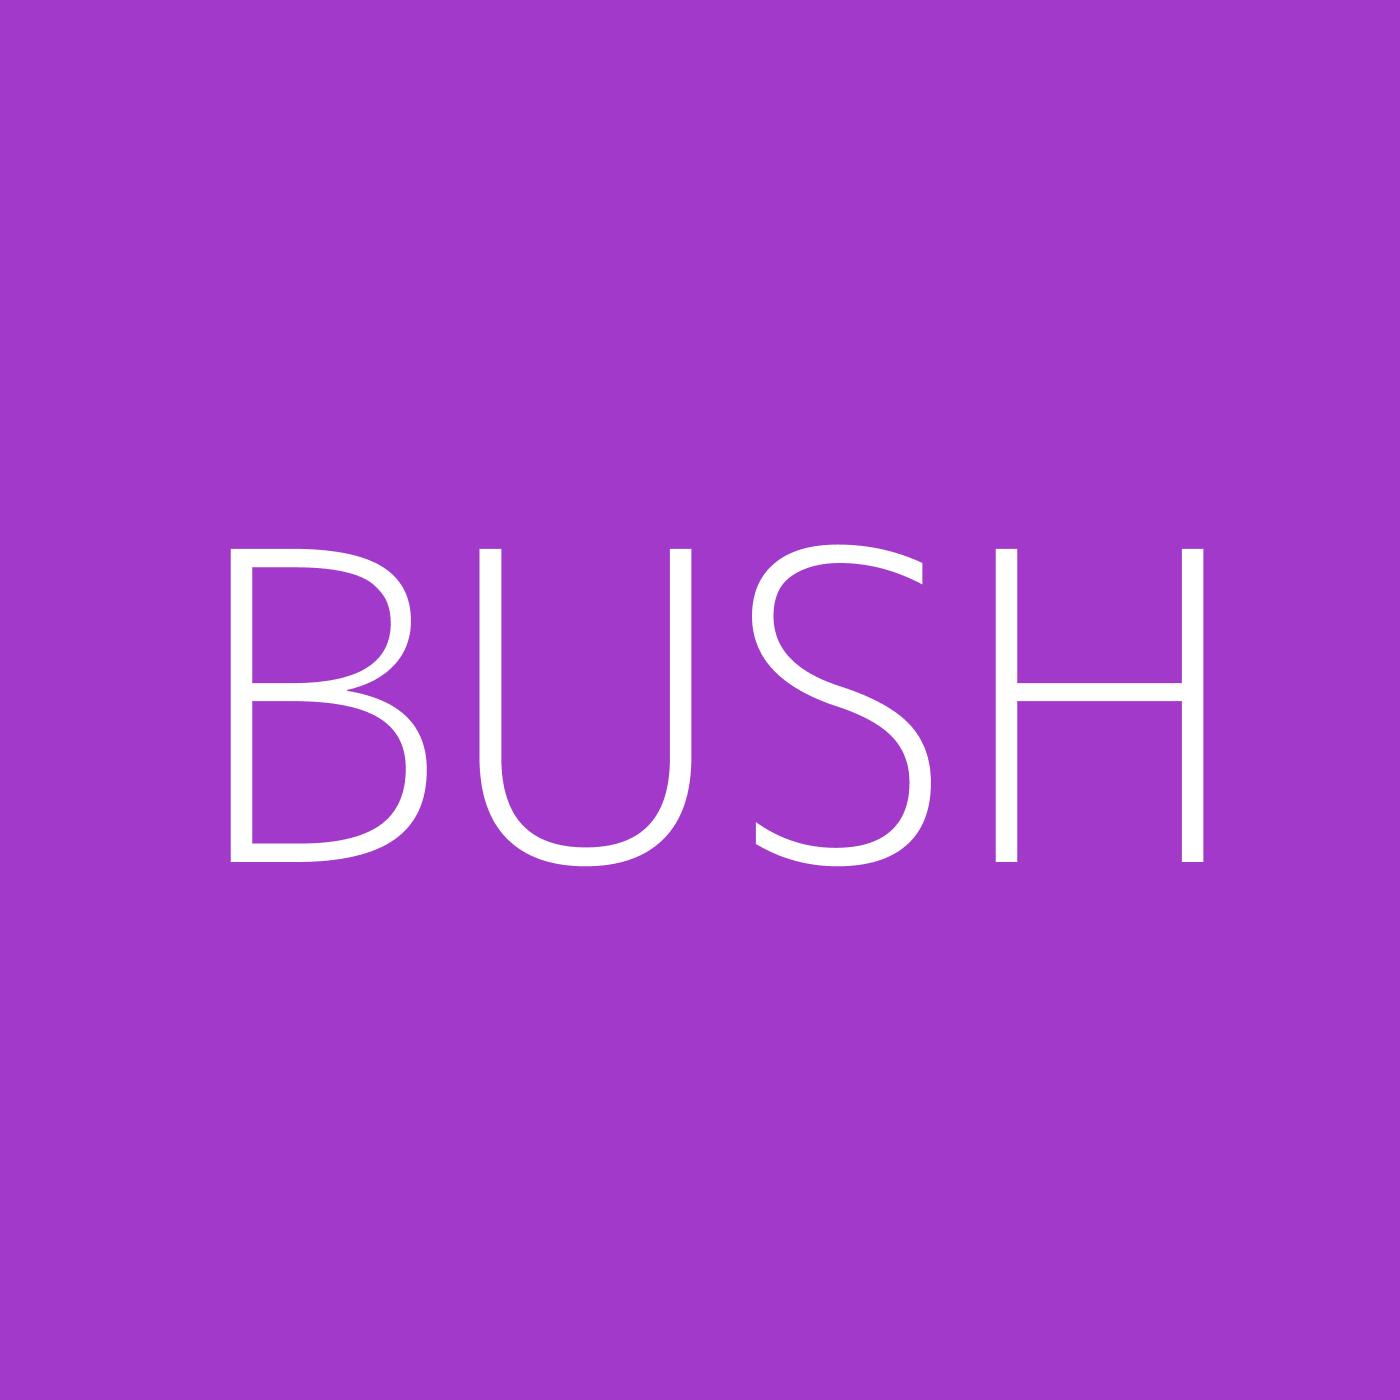 Bush Playlist Artwork